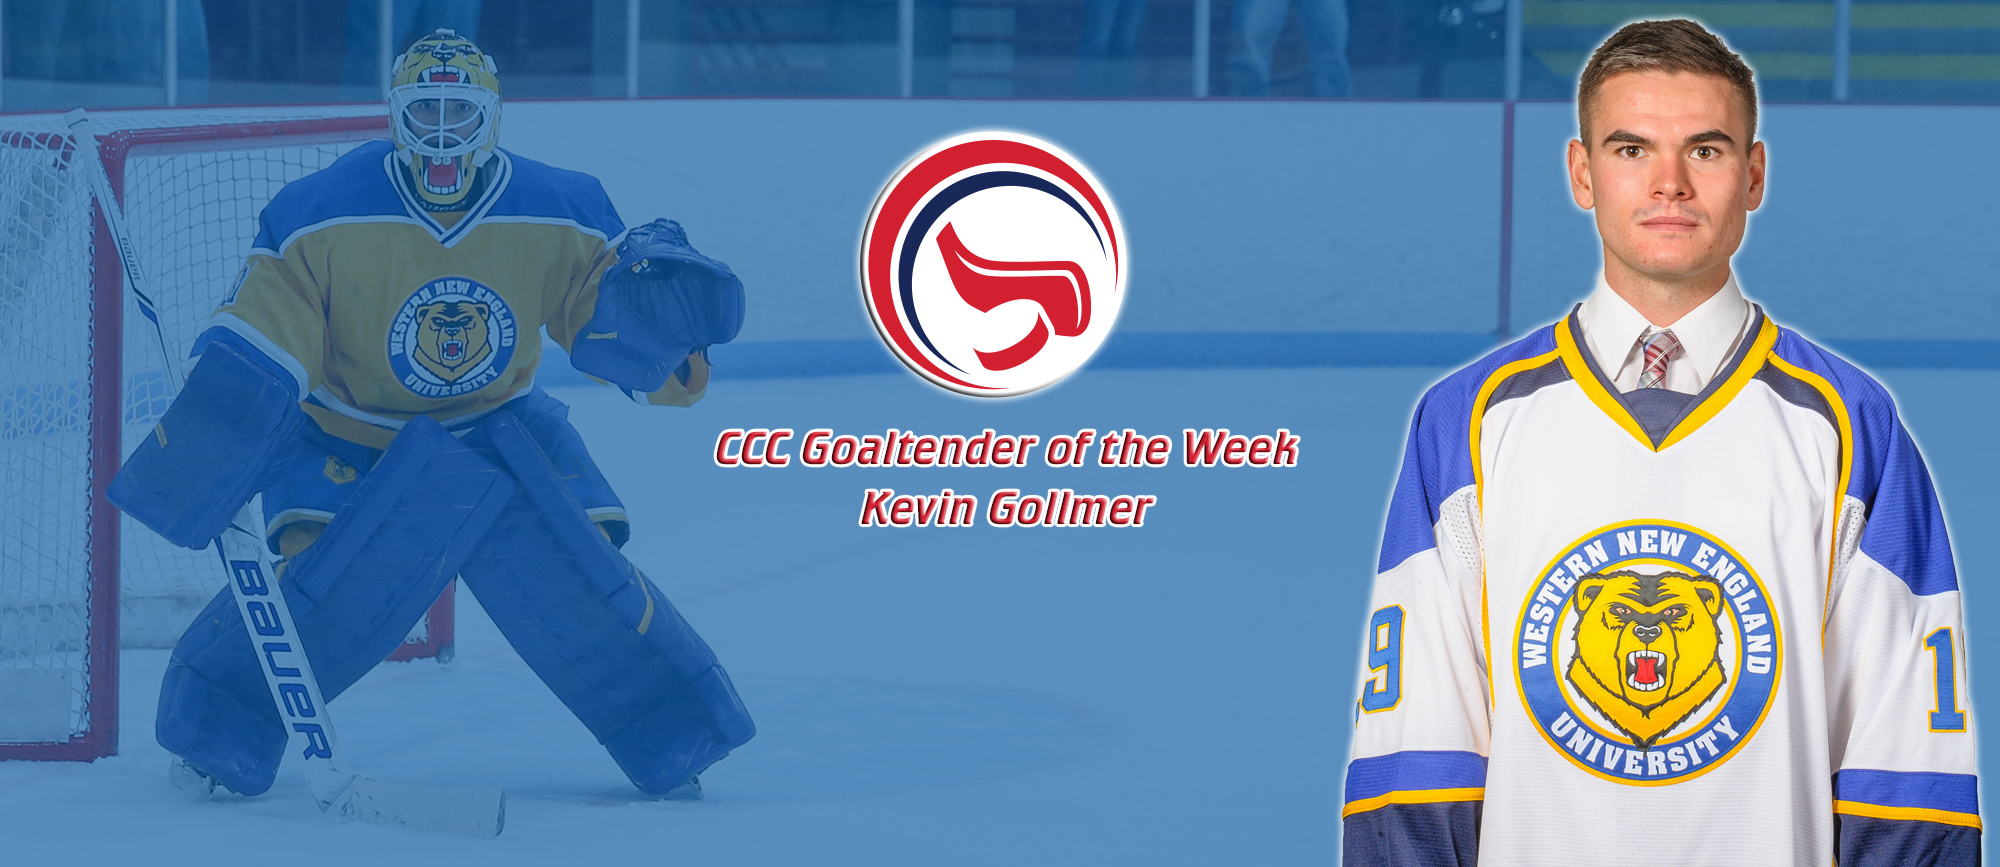 Kevin Gollmer Earns Second Career CCC Goaltender of the Week Award